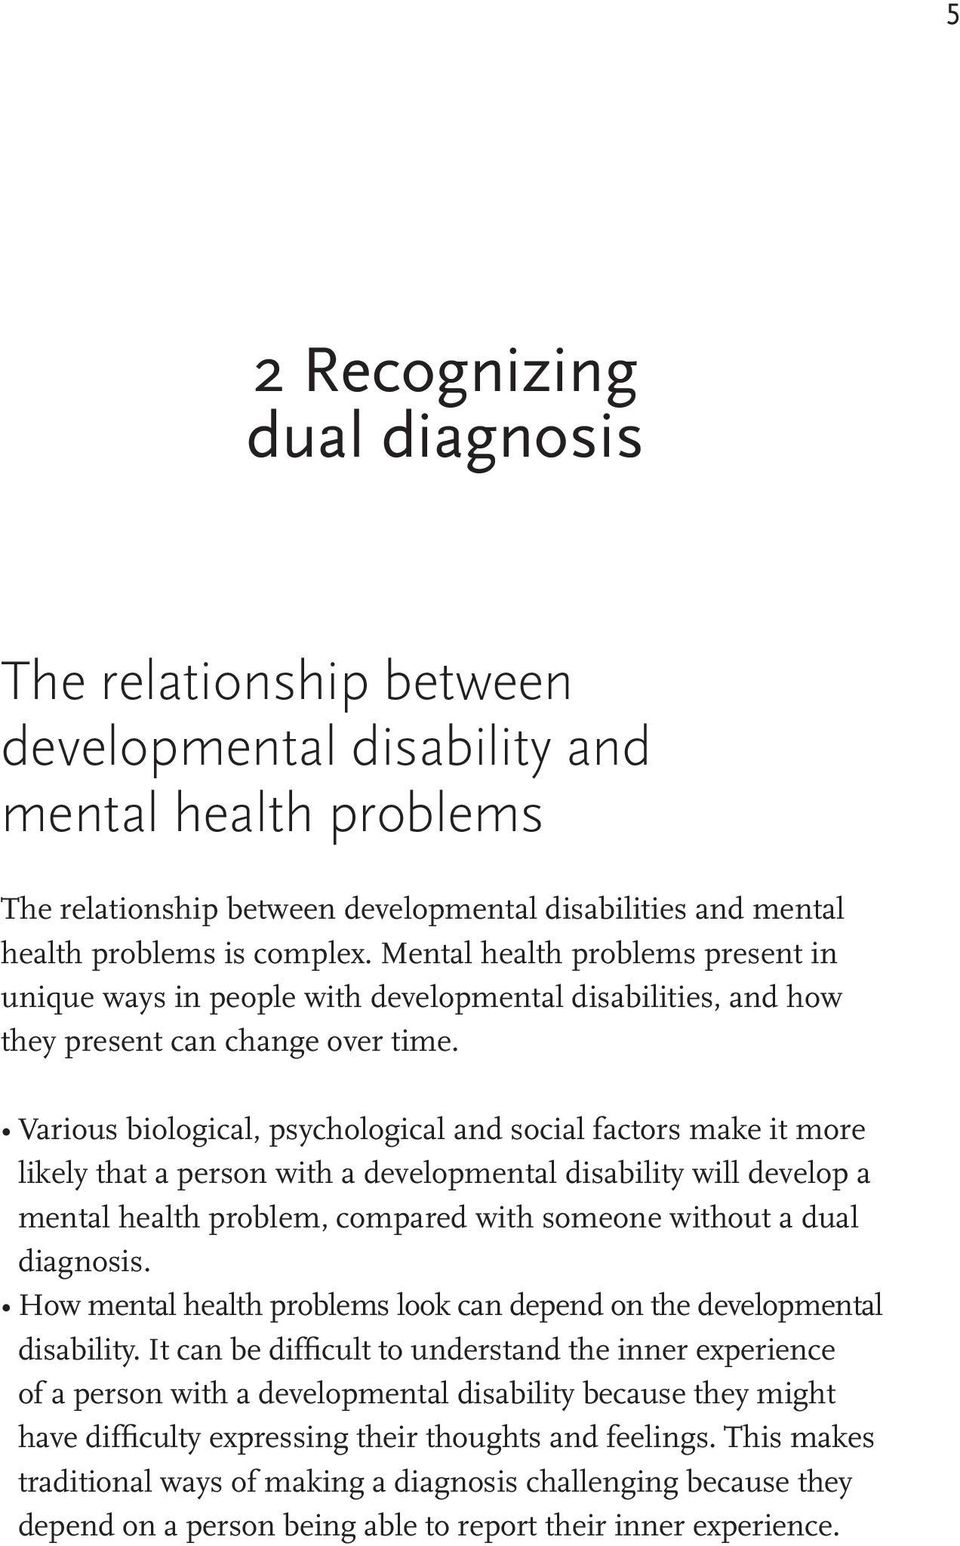 Various biological, psychological and social factors make it more likely that a person with a developmental disability will develop a mental health problem, compared with someone without a dual